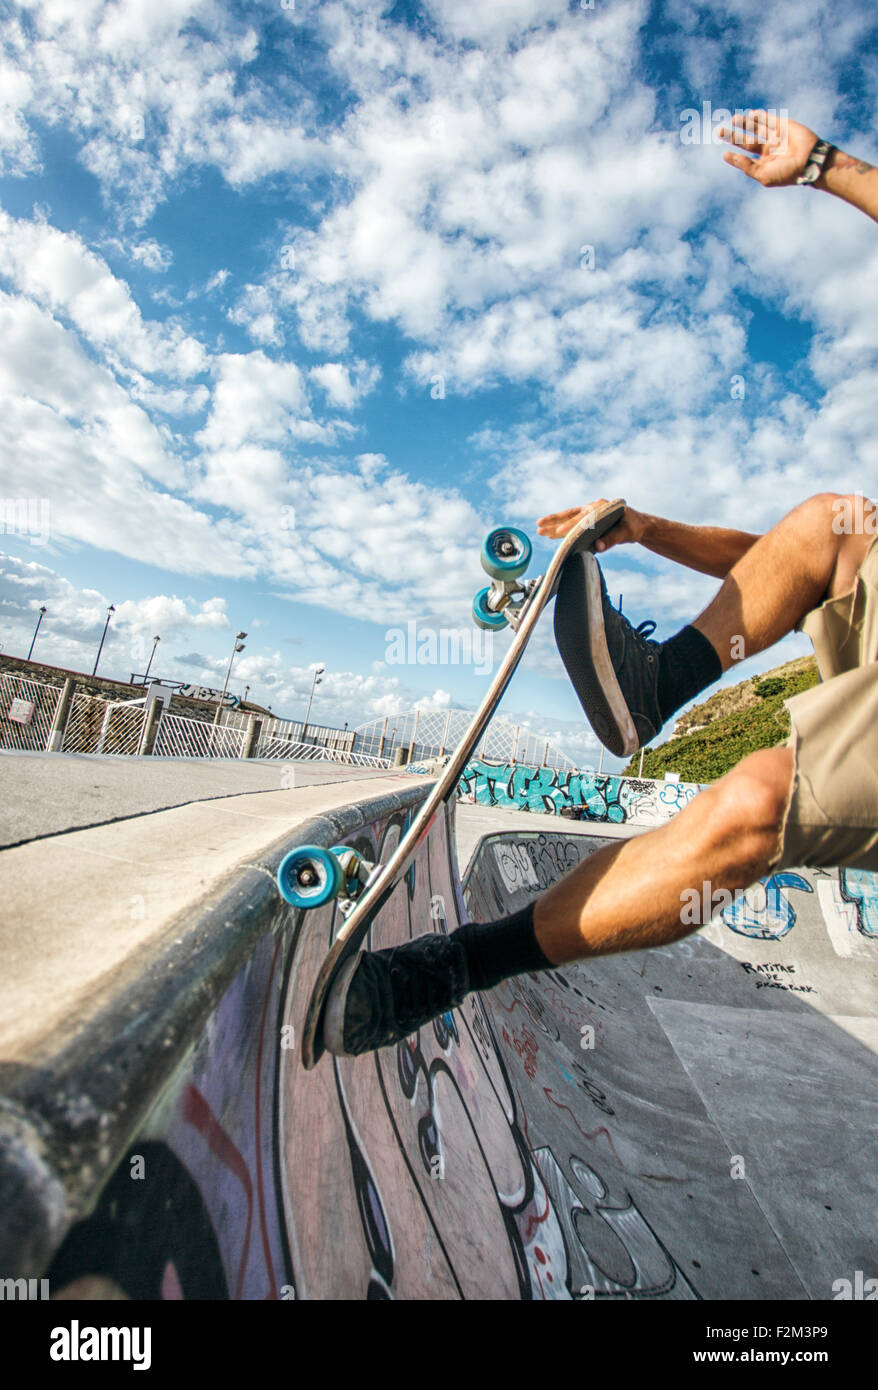 Legs of young man skateboarding in a skatepark - Stock Image